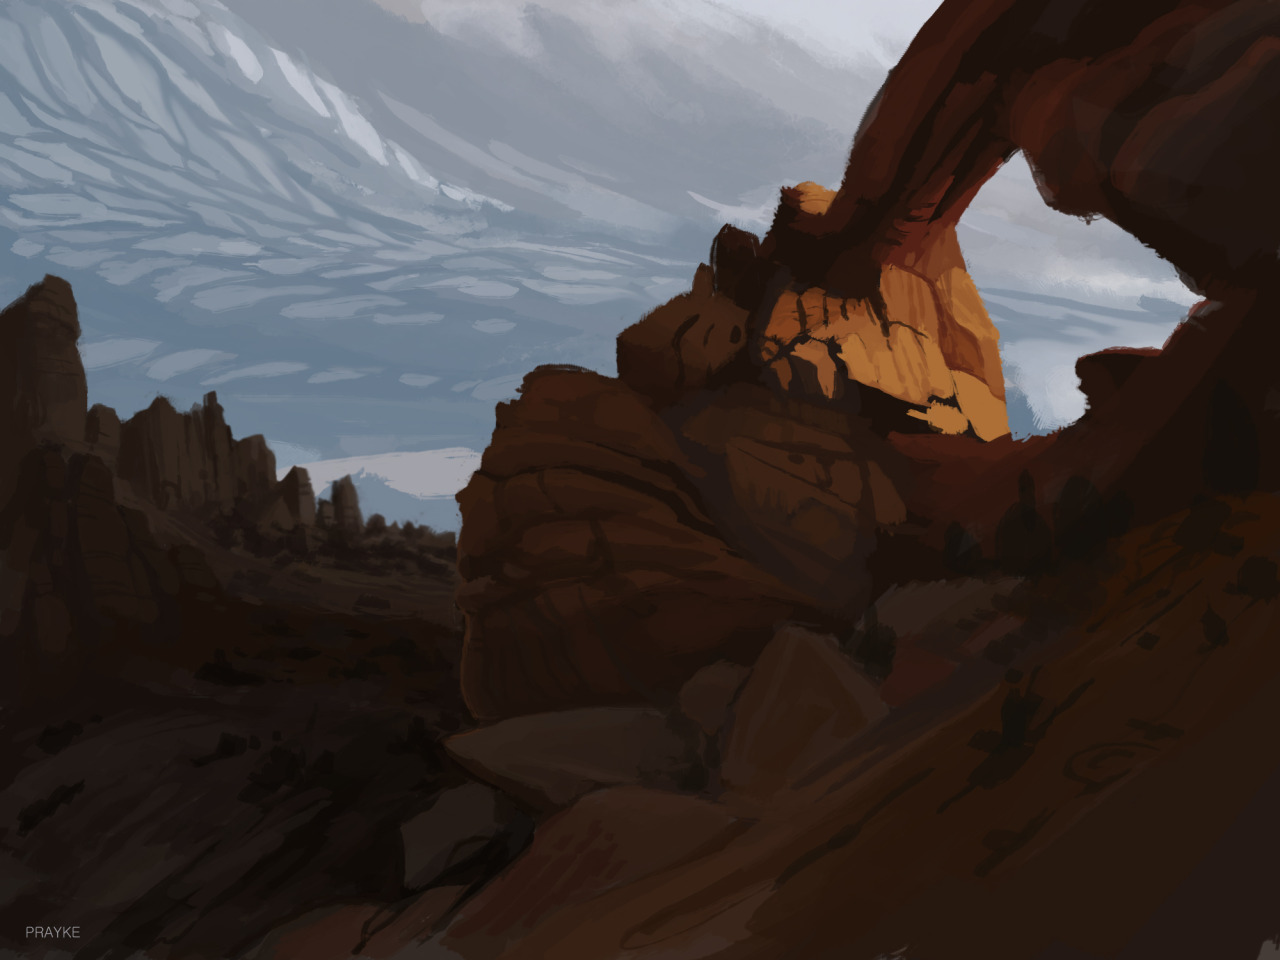 Somewhat-speedpaint of an image found here.